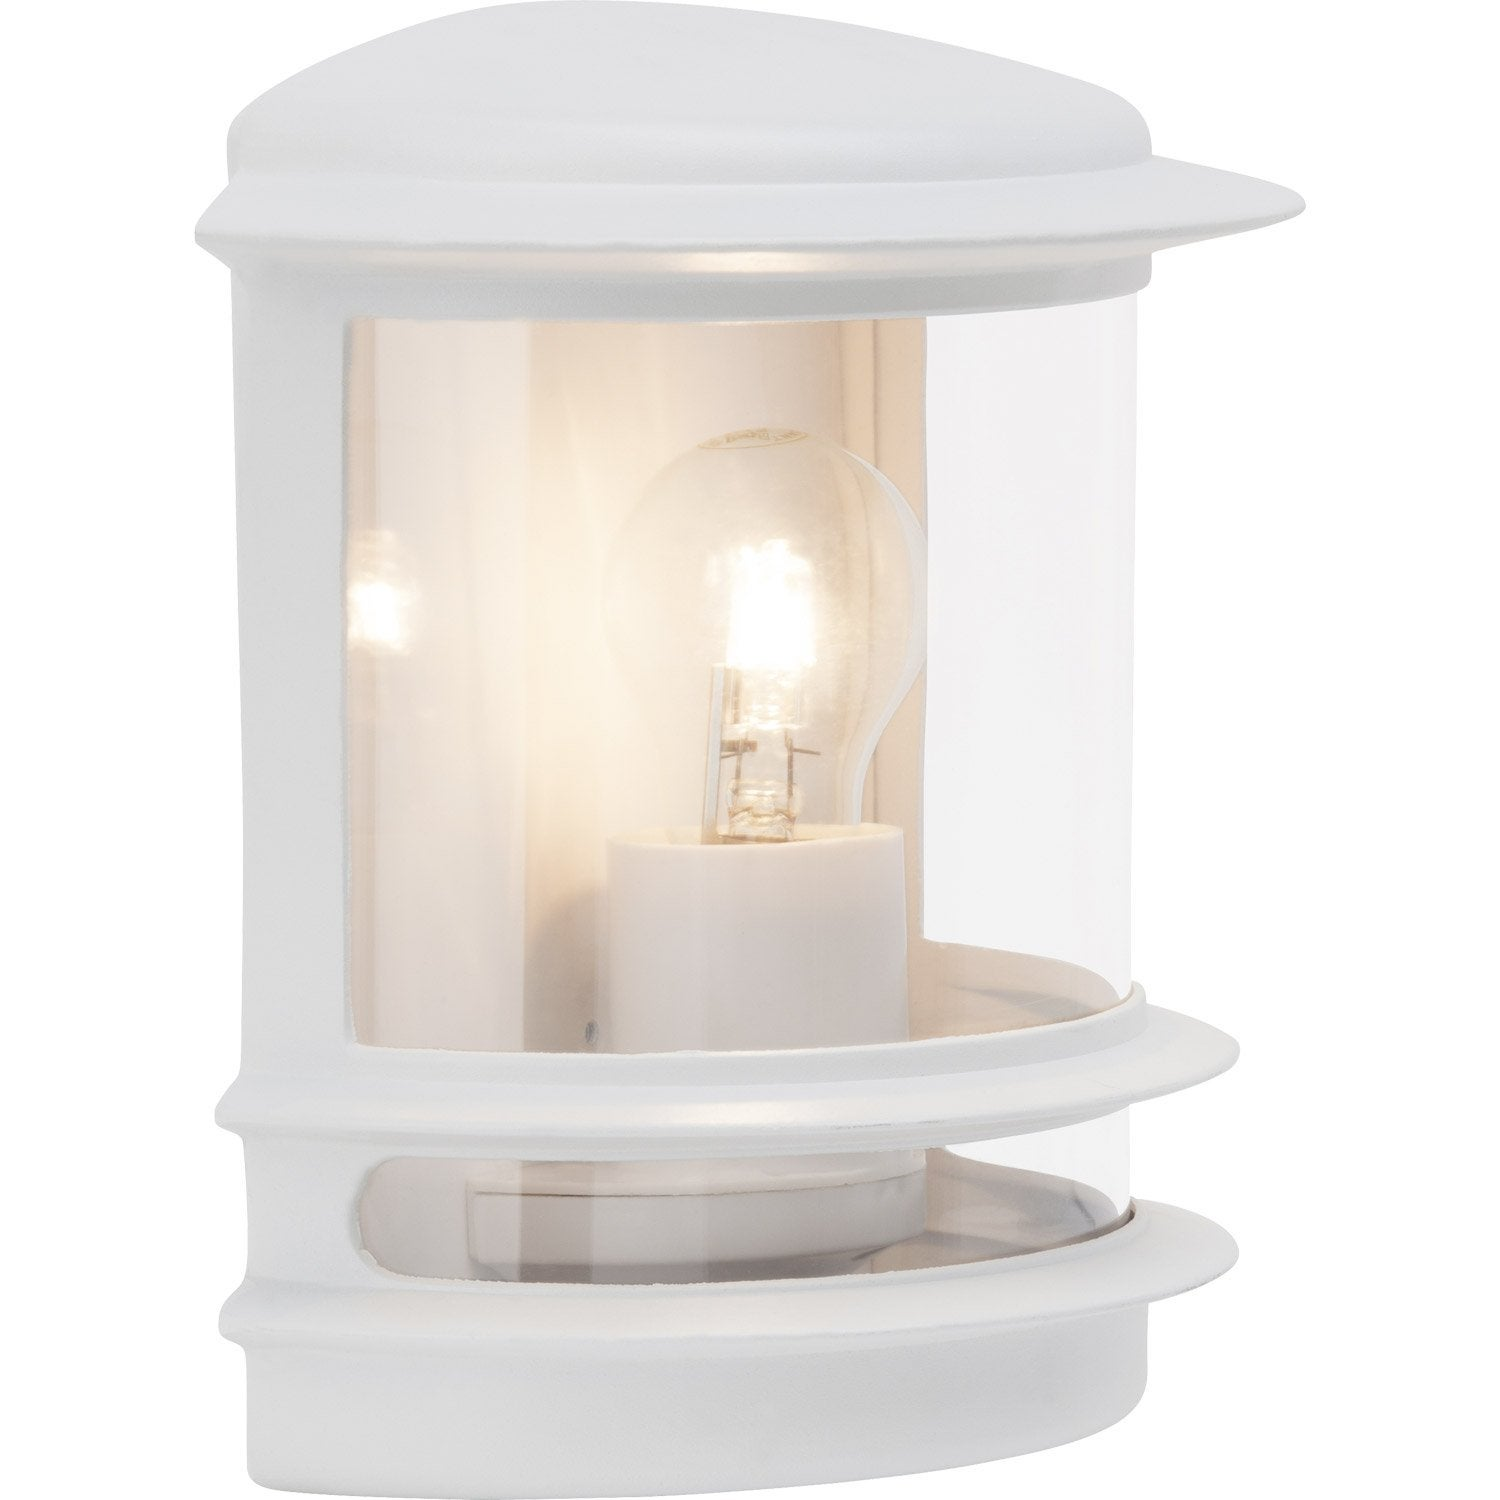 Demi applique ext rieure hollywood e27 blanc brilliant - Lanterne exterieur leroy merlin ...